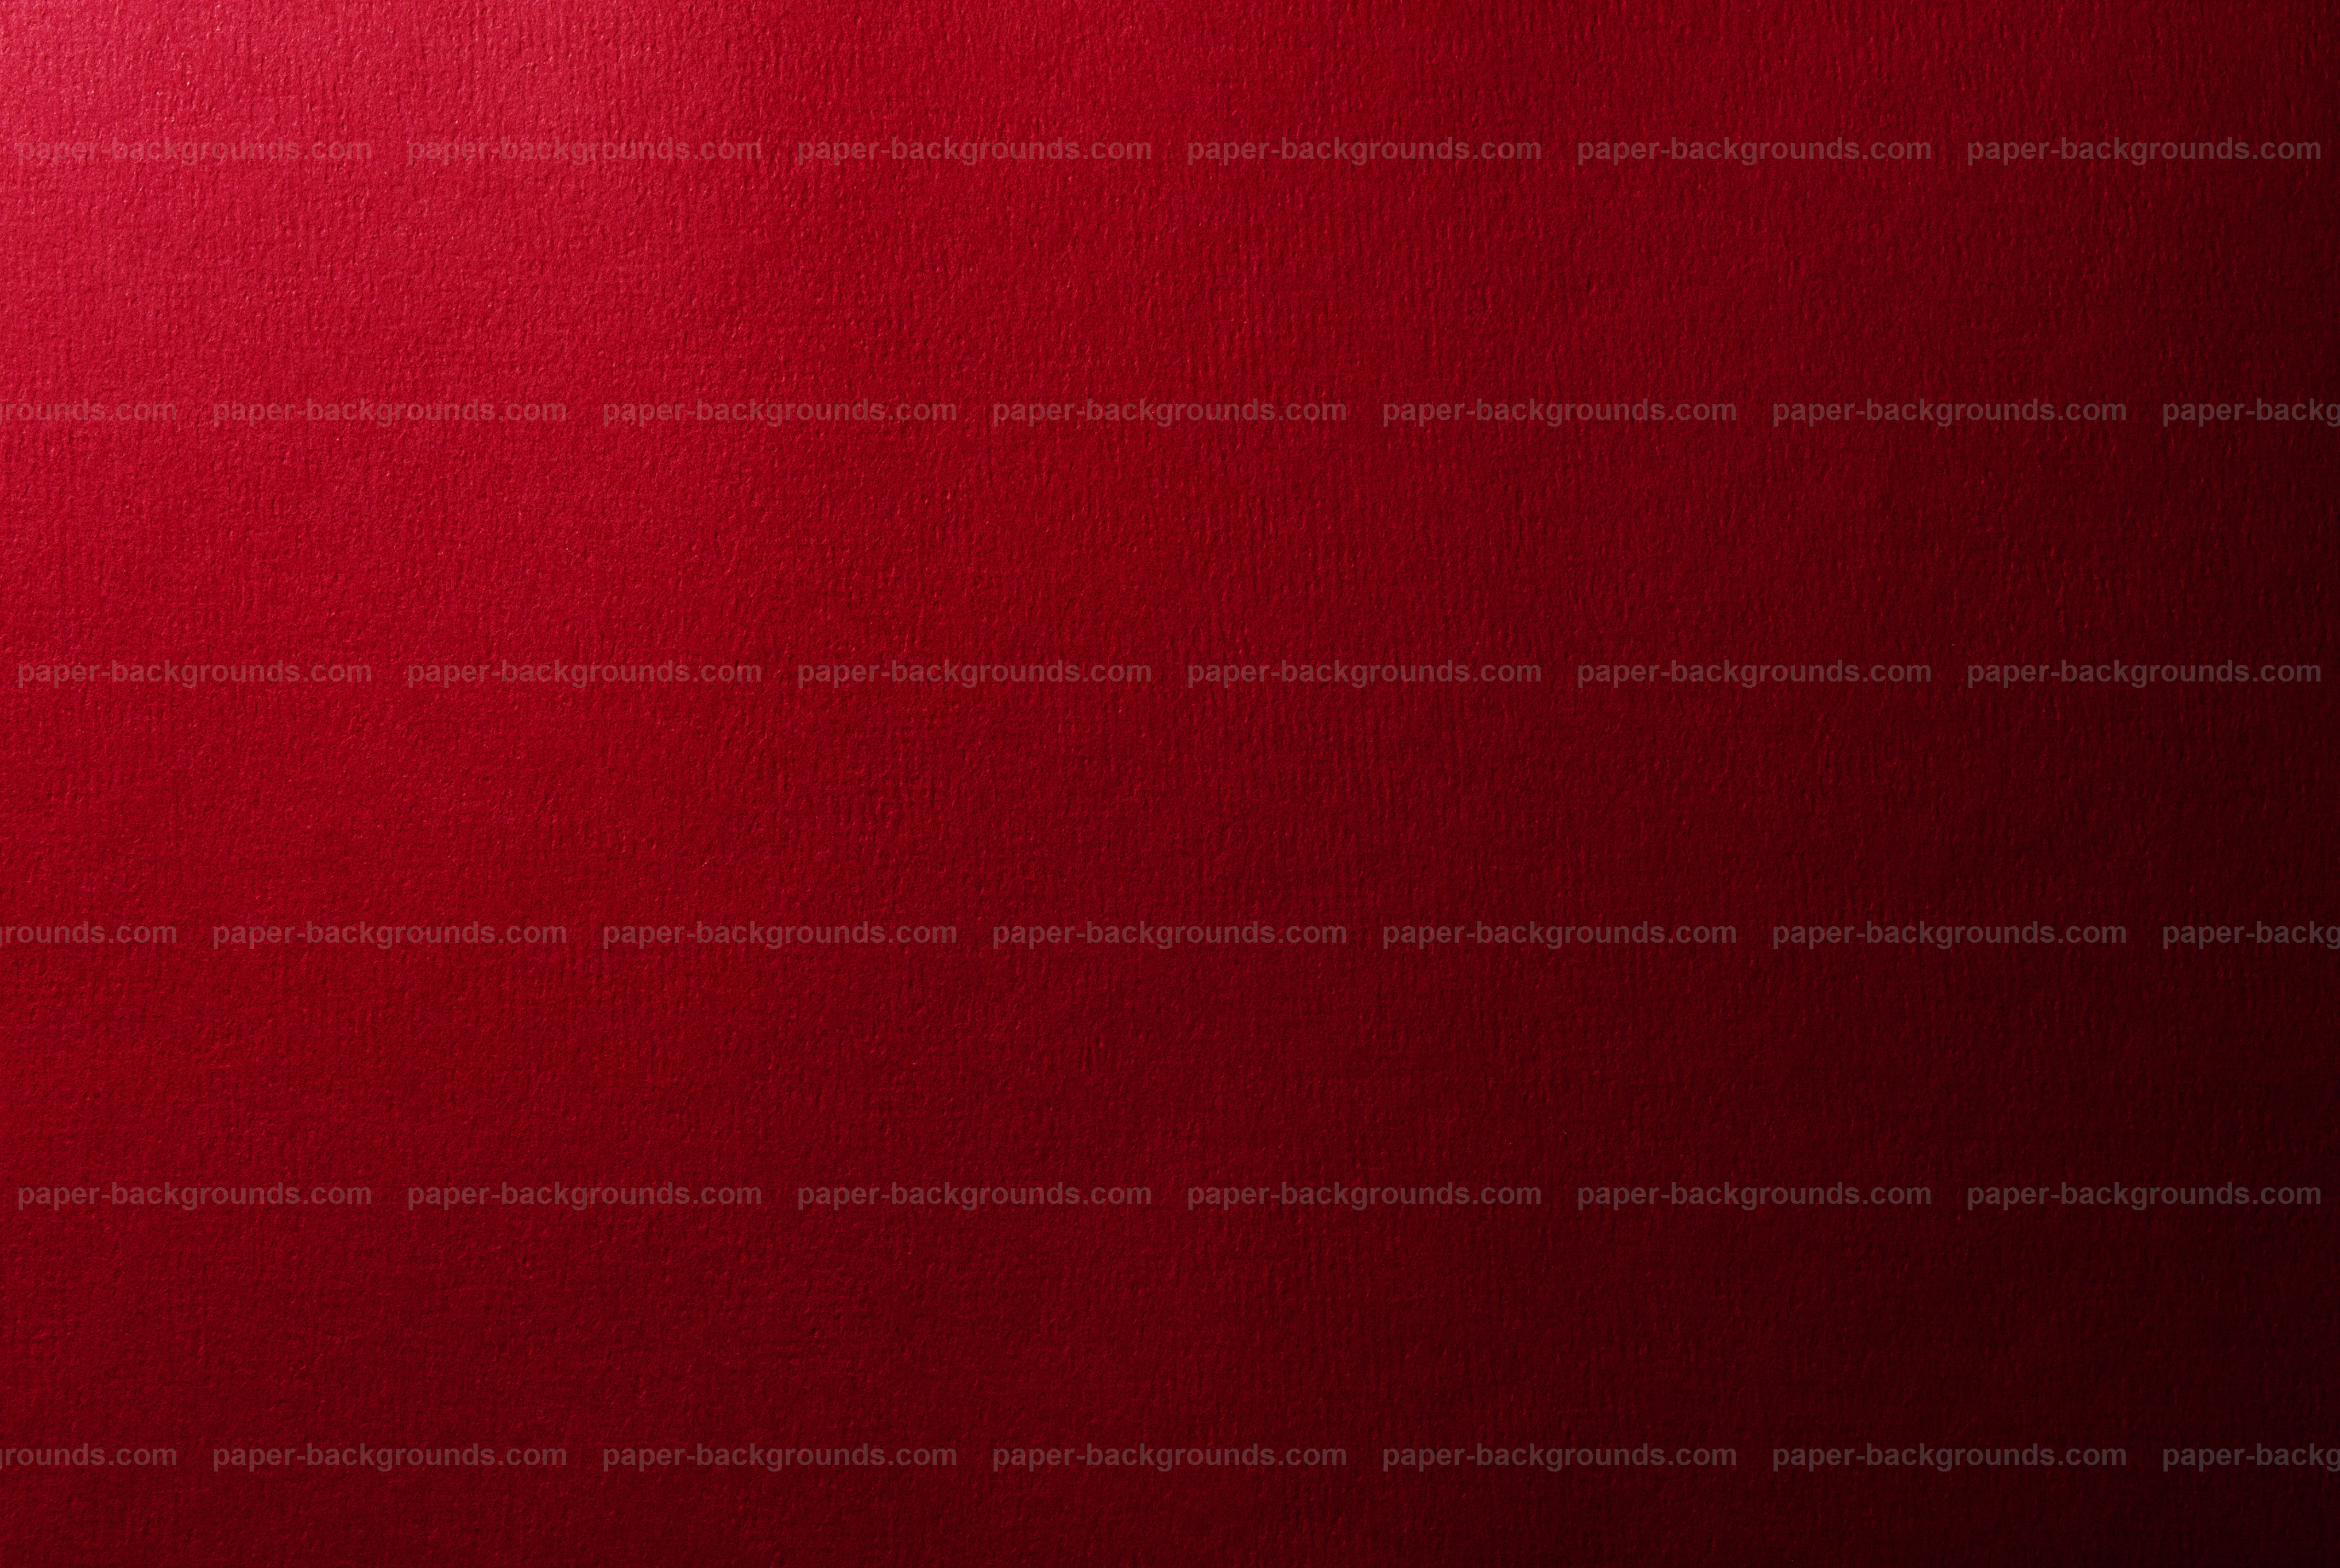 dark red paper background texture Paper Backgrounds 4075x2731